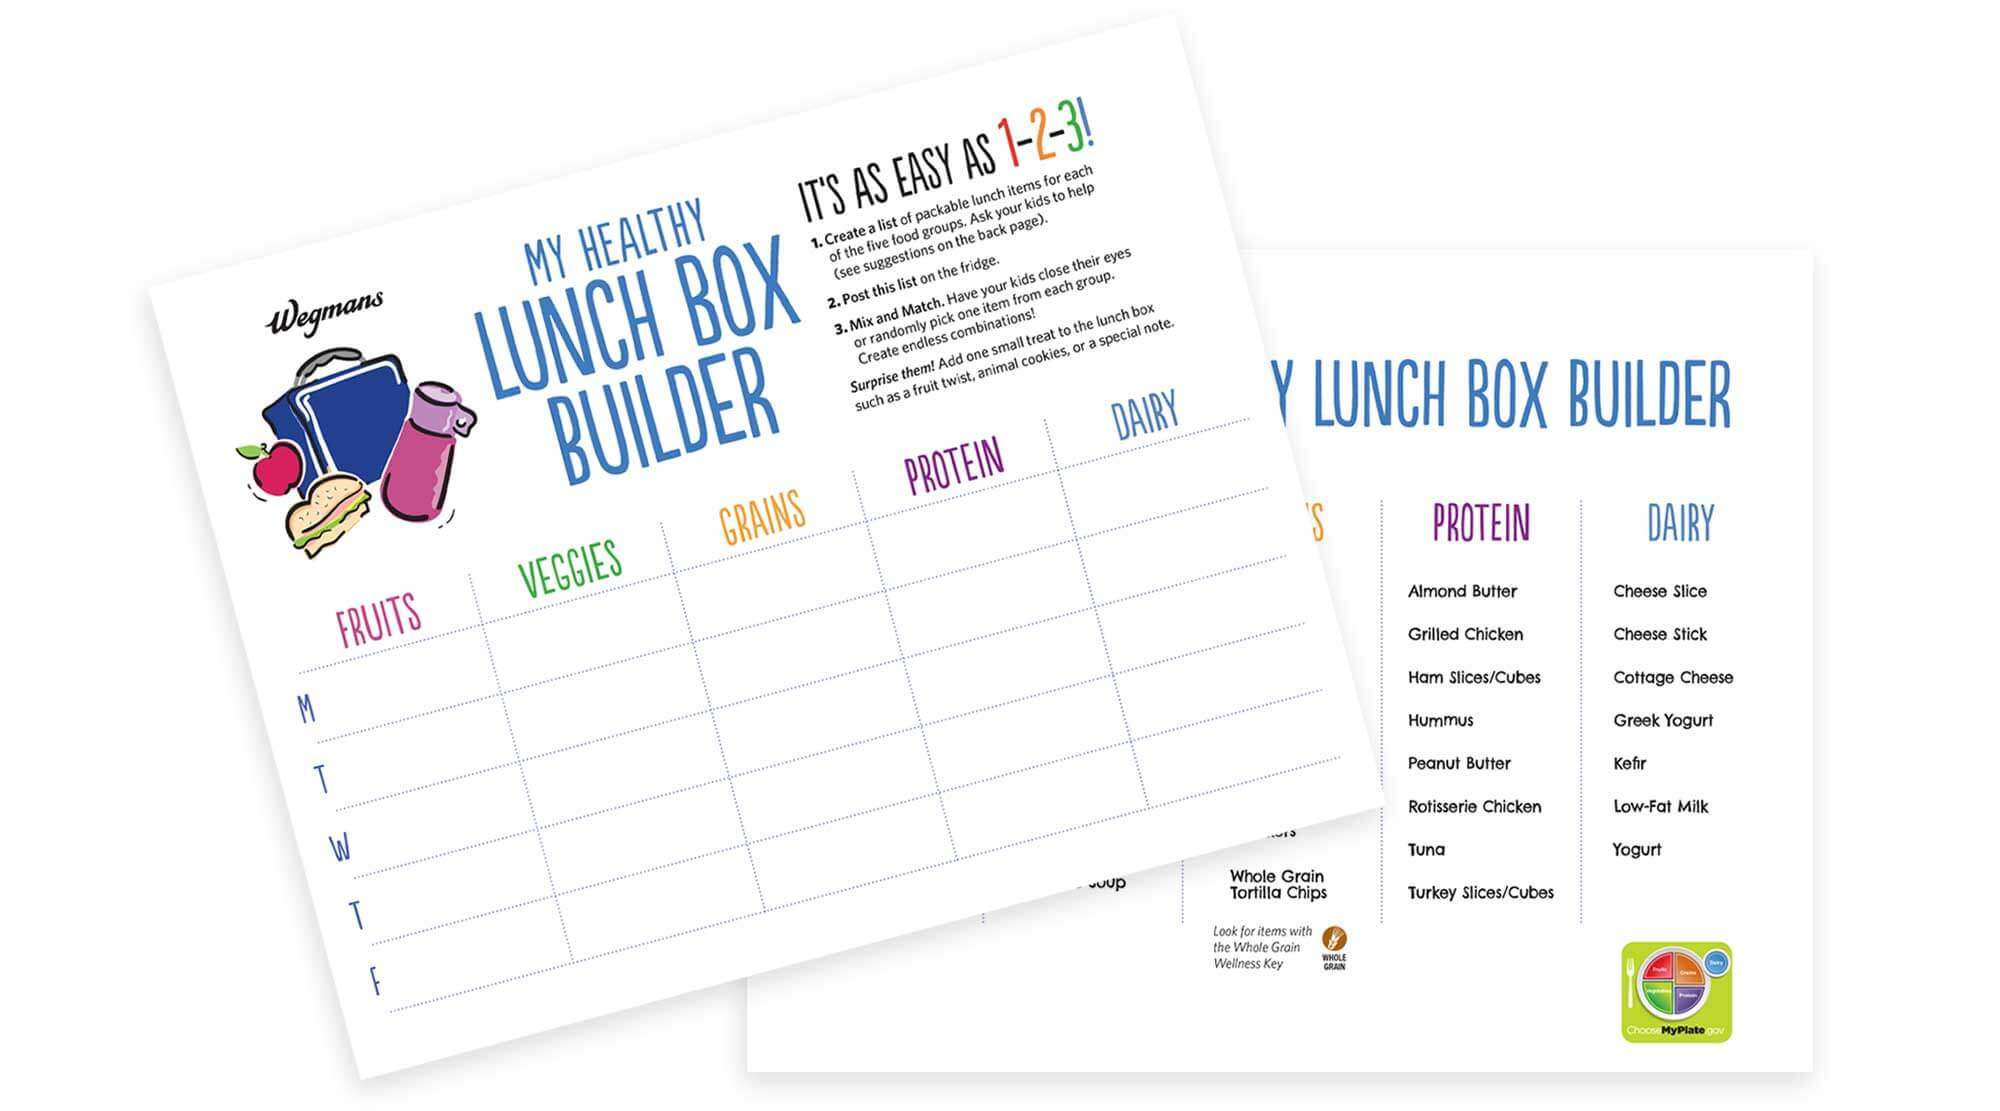 Lunch Box Builder Activity Sheet